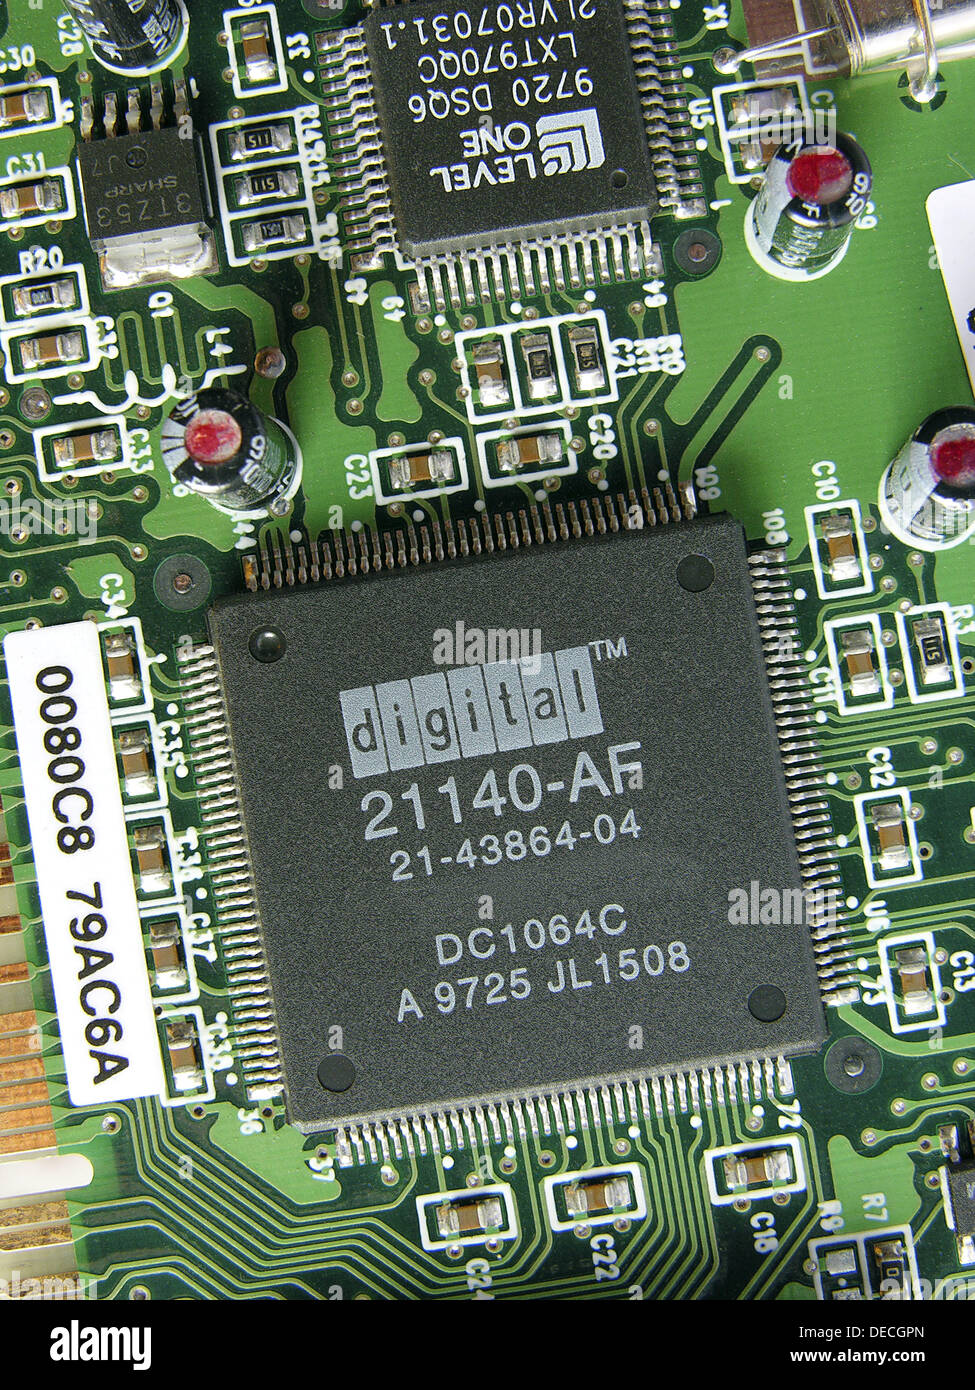 21140 BASED PCI DRIVERS DOWNLOAD FREE